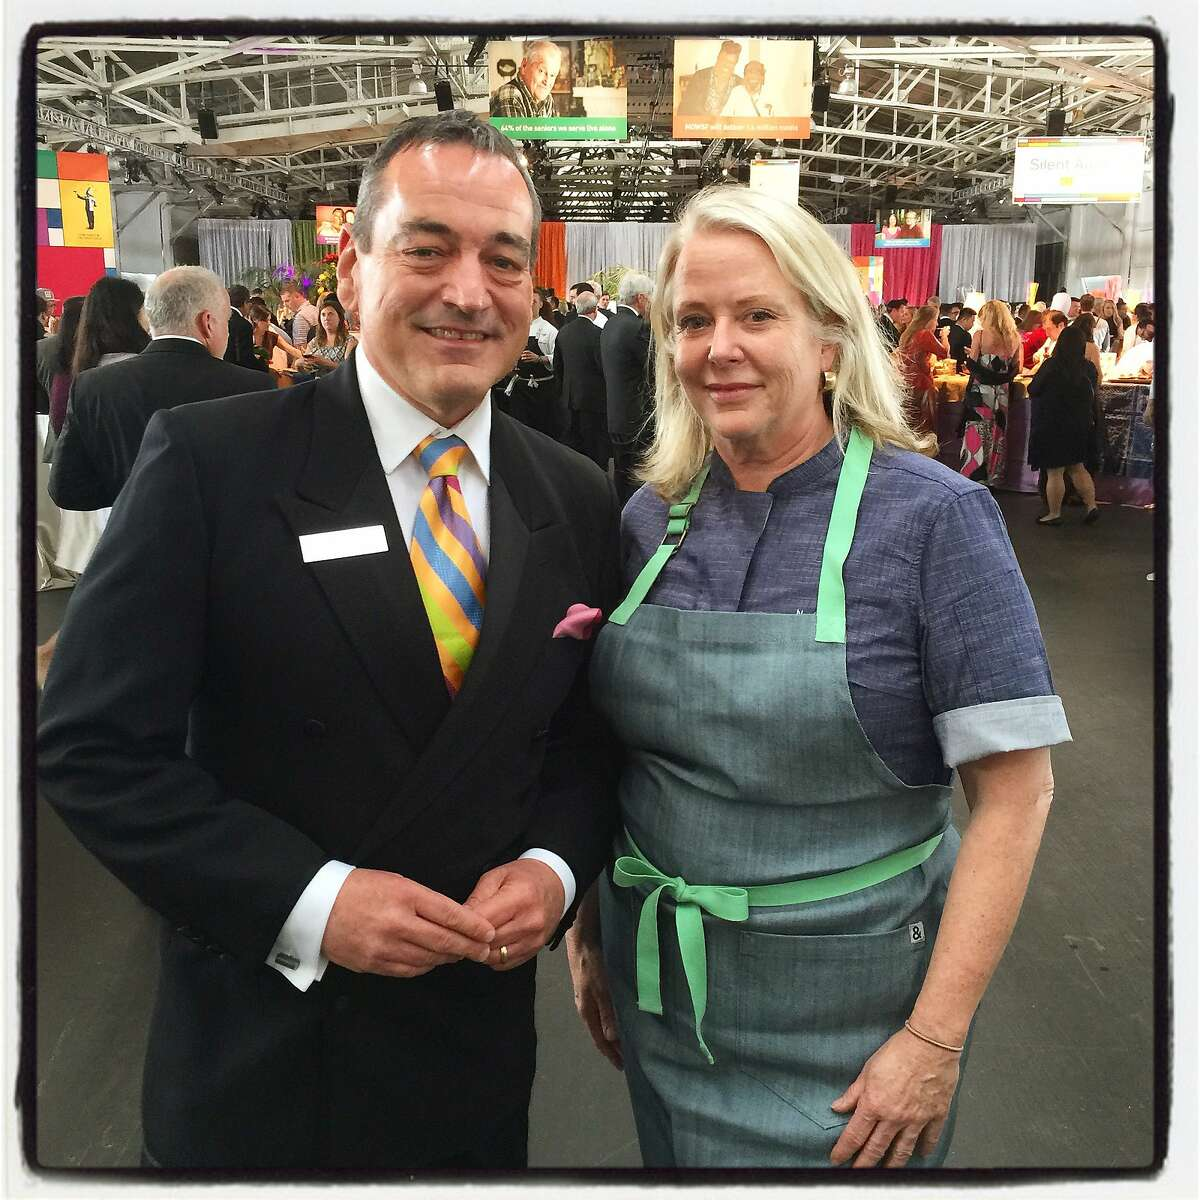 Meals on Wheels CEO Ashley McCumber and Chef Nancy Oakes at the Star Chefs and Vintners Gala. April 2015. By Catherine Bigelow.